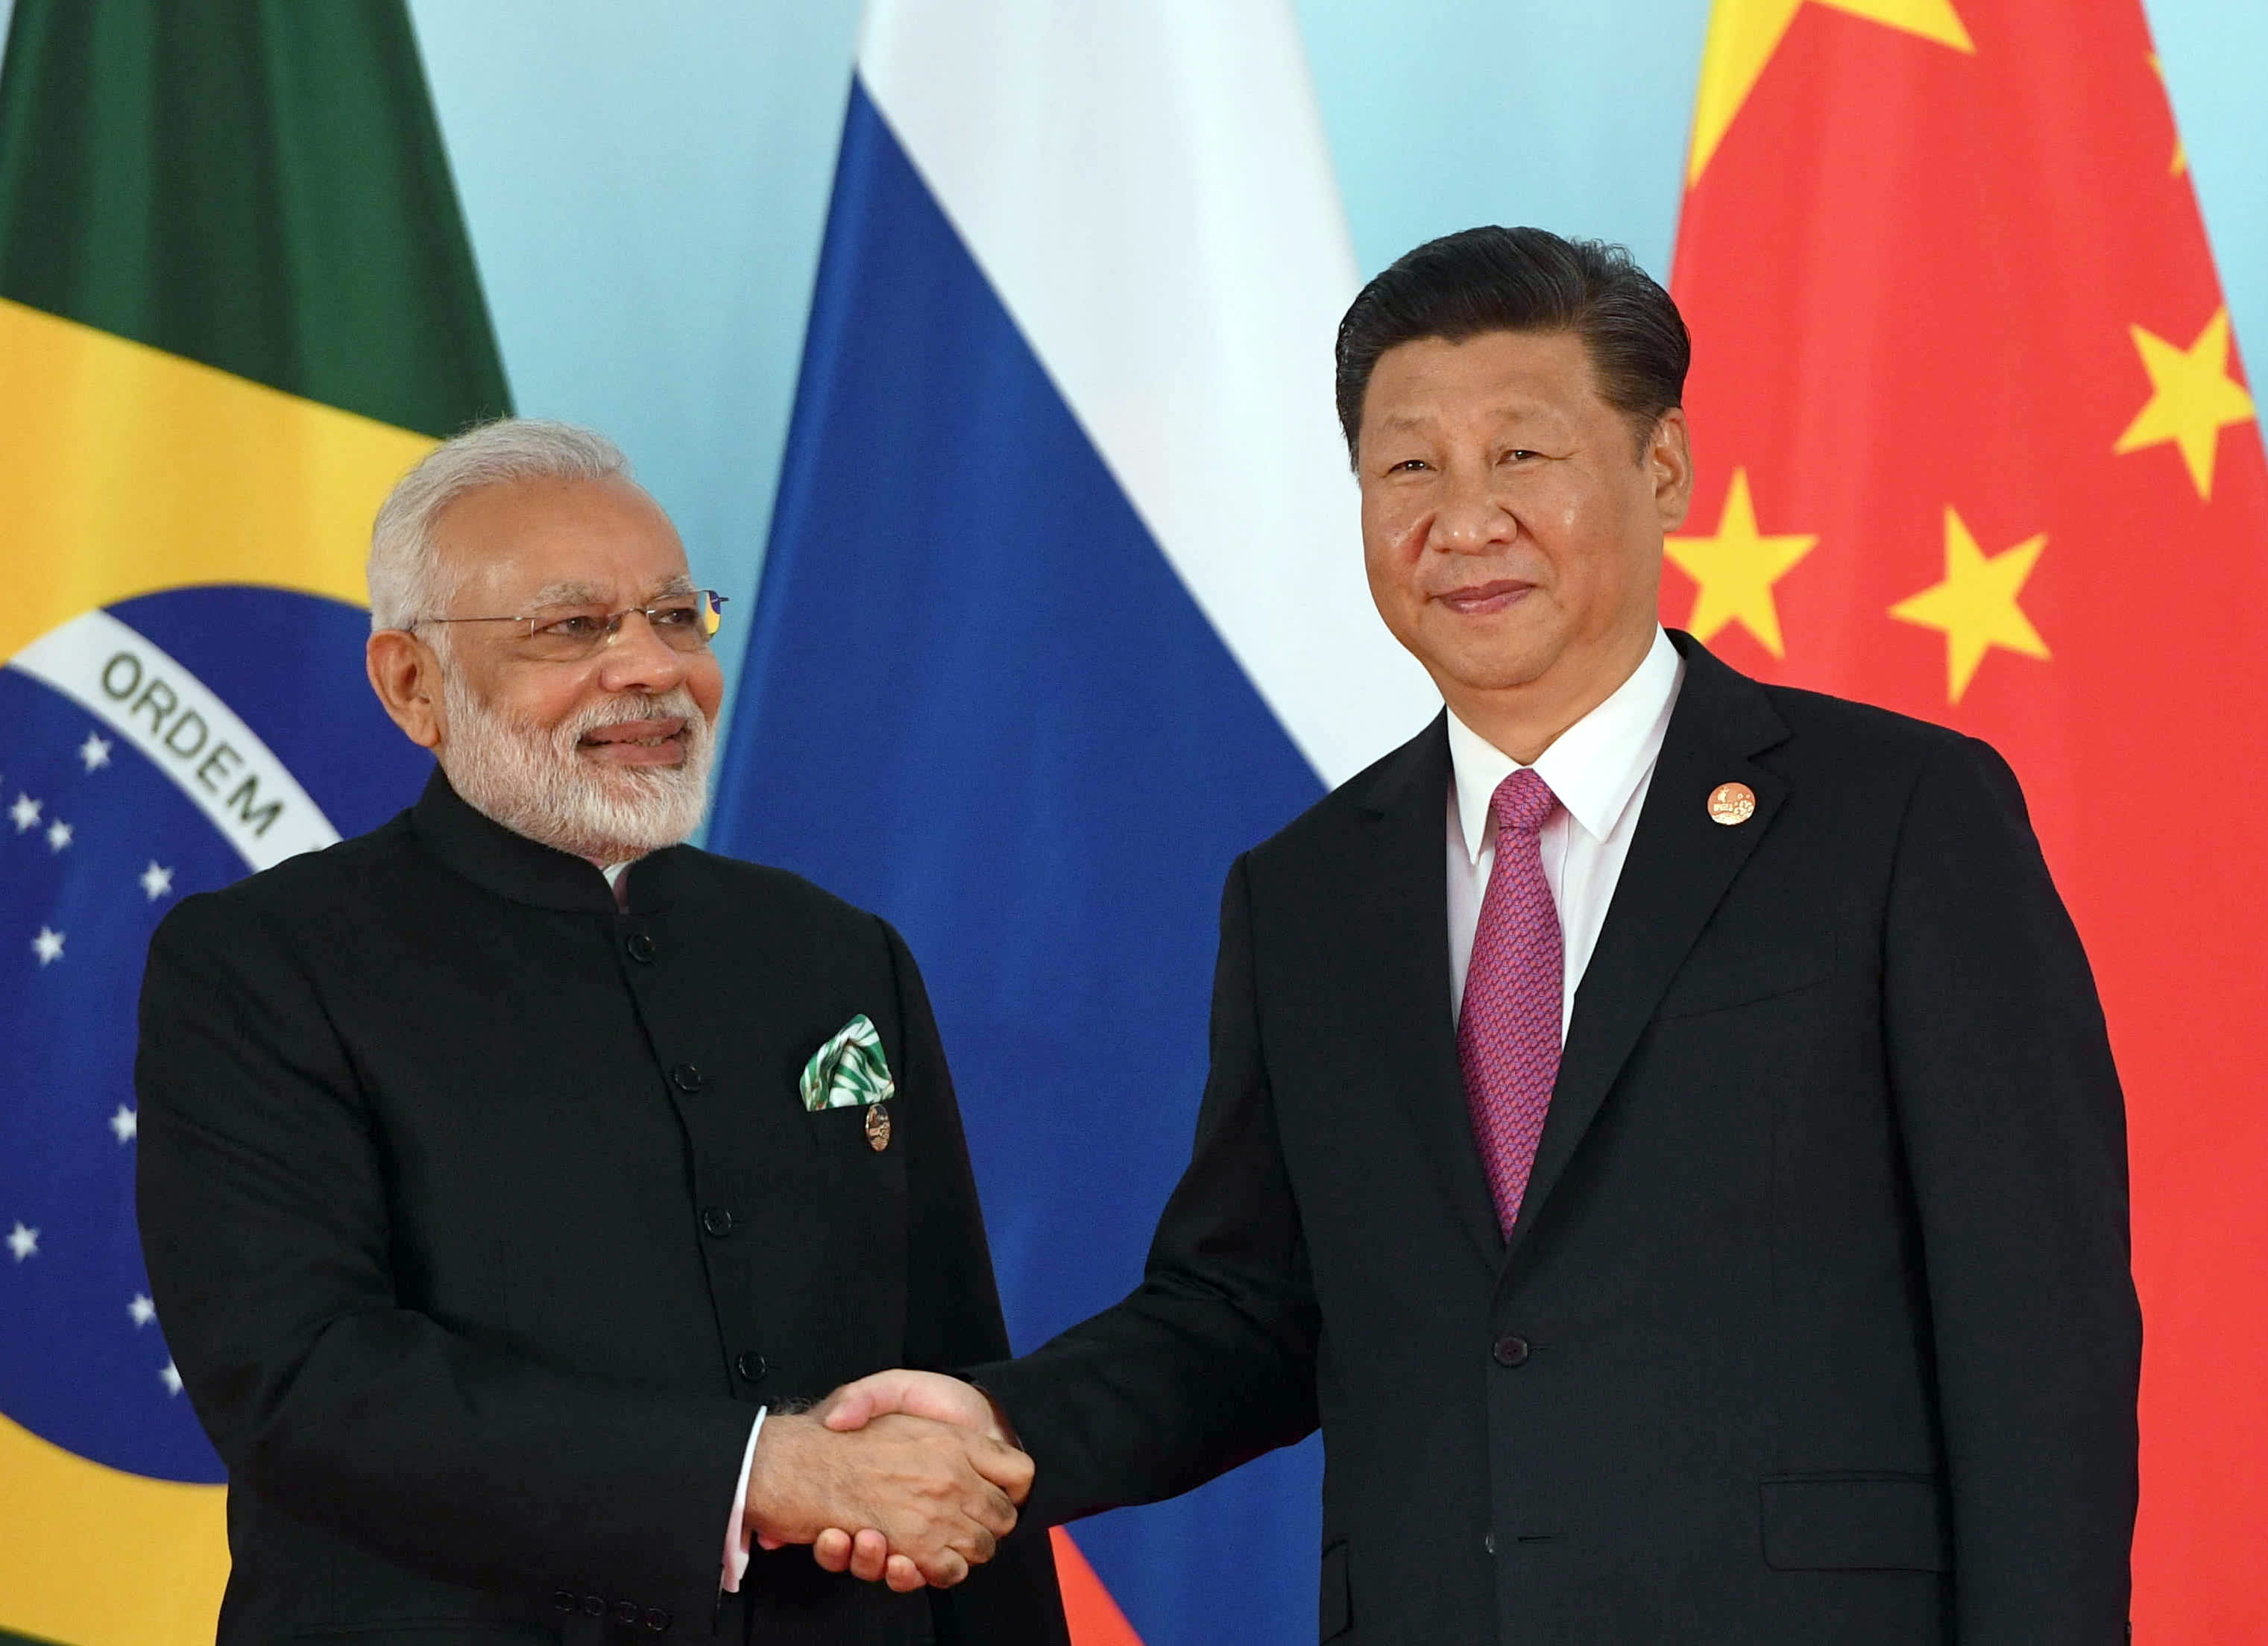 Kashmir and border dispute will likely top the agenda as India and China leaders meet